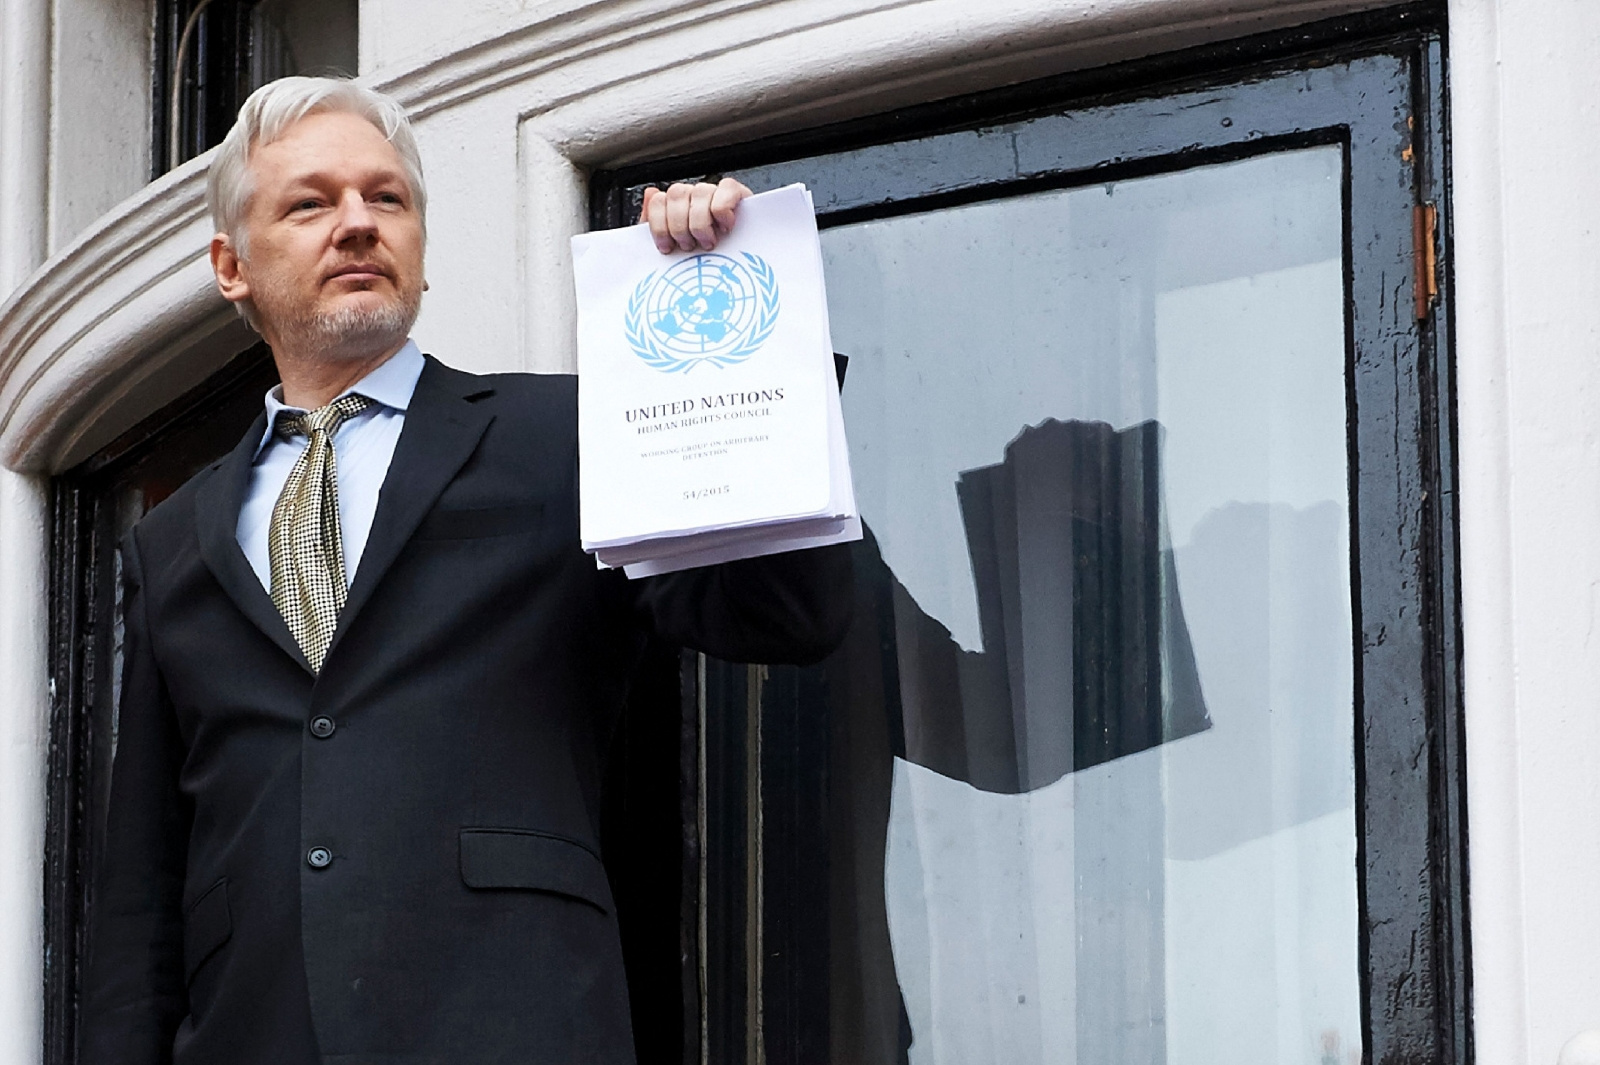 Swedish court to rule on Julian Assange extradition